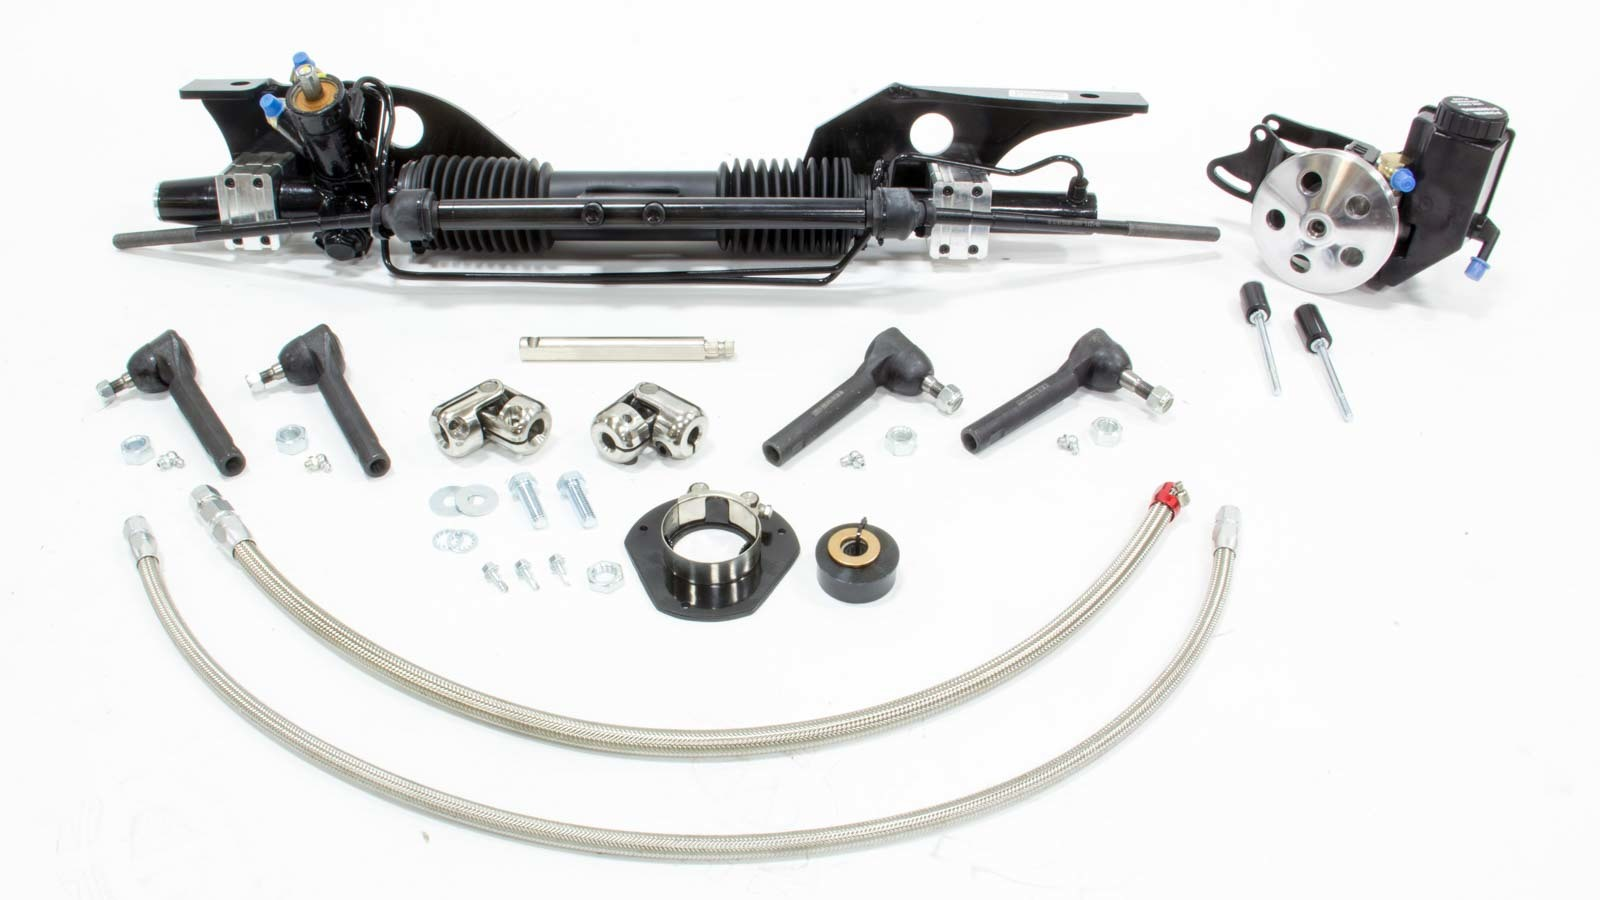 Power Rack & Pinion - 67-70 Mustang